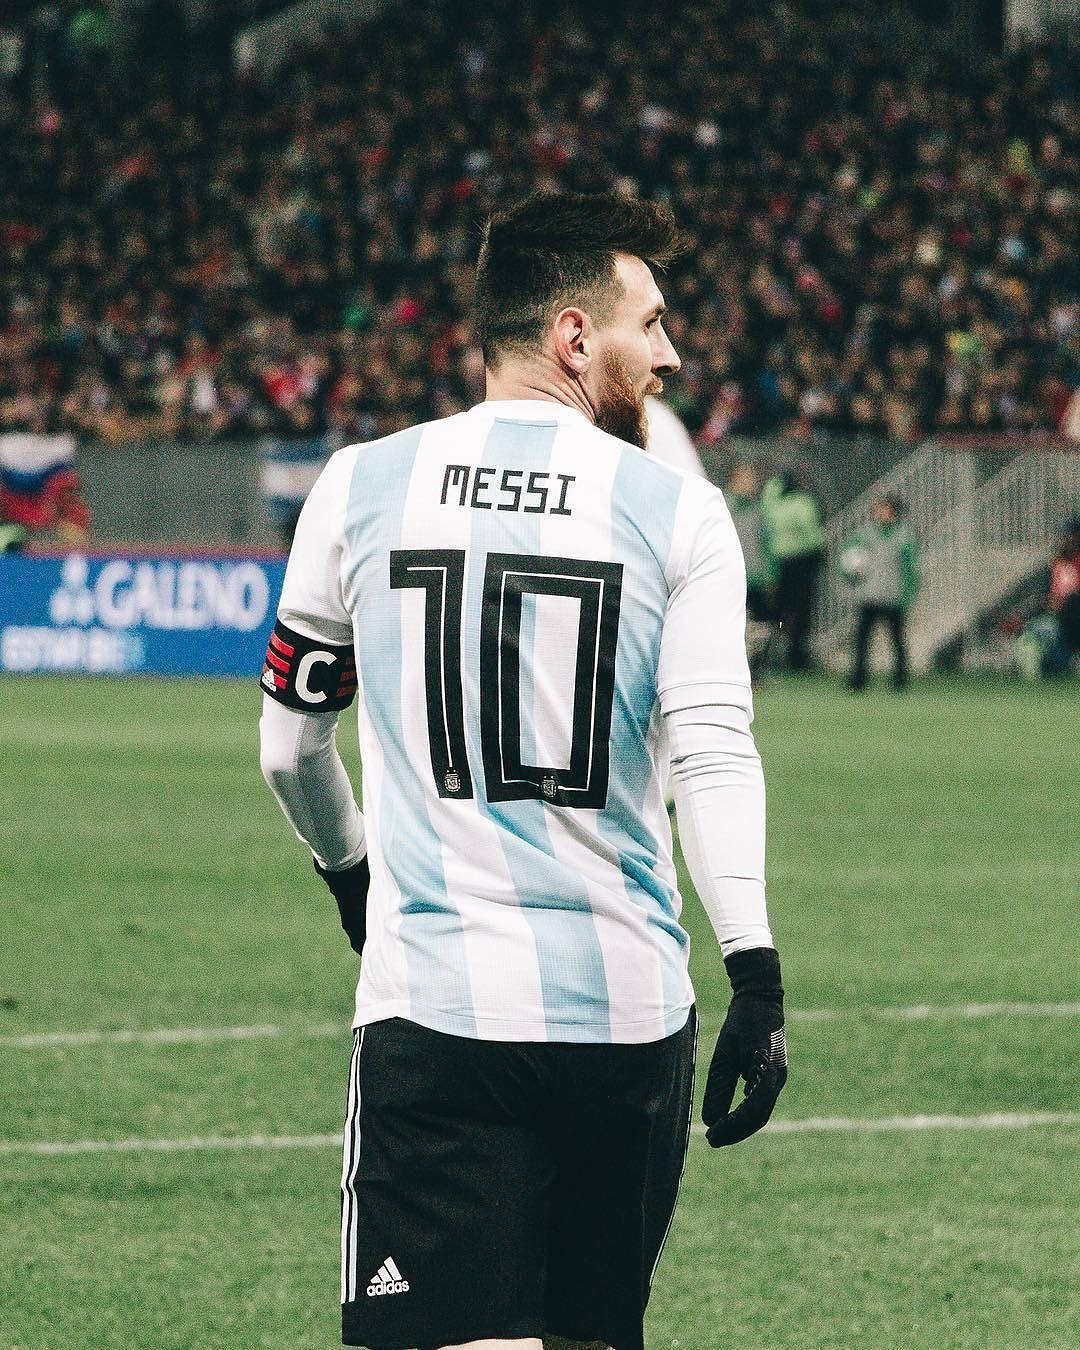 Wallpaper Of Messi: Messi Argentina 2018 Wallpapers